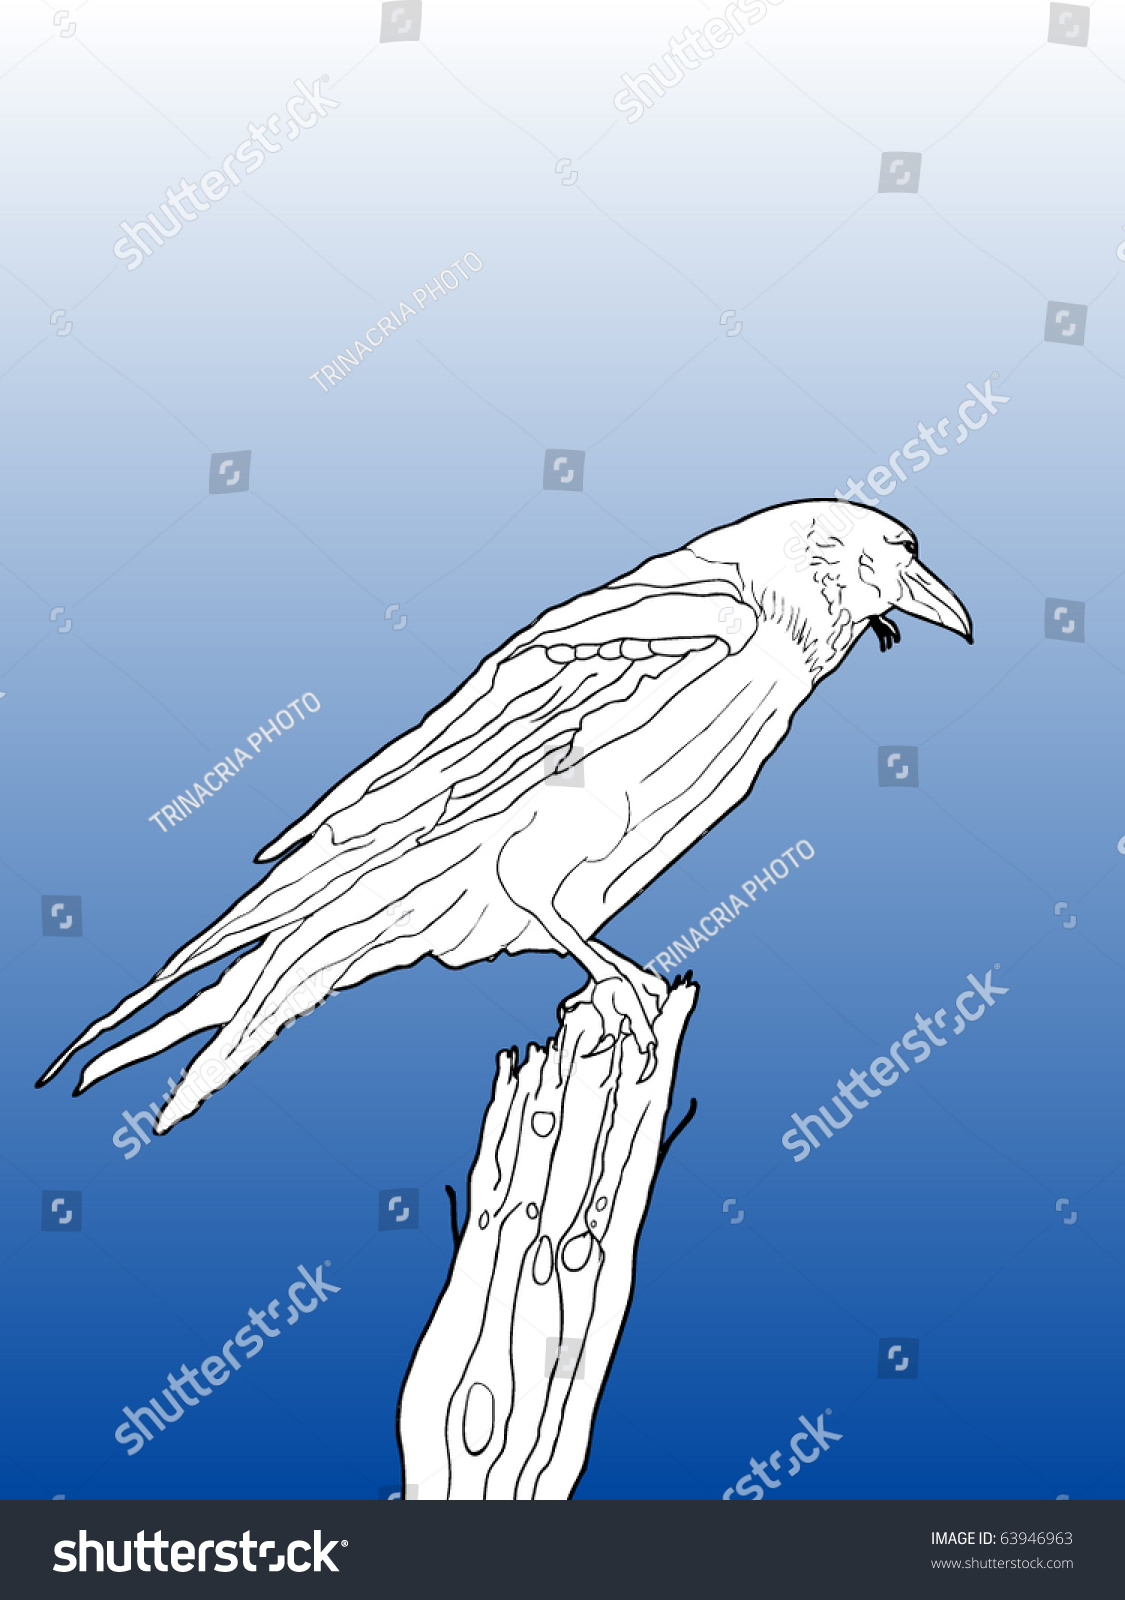 Line Drawing Editor : Vector contour line drawing of a crow on branch with